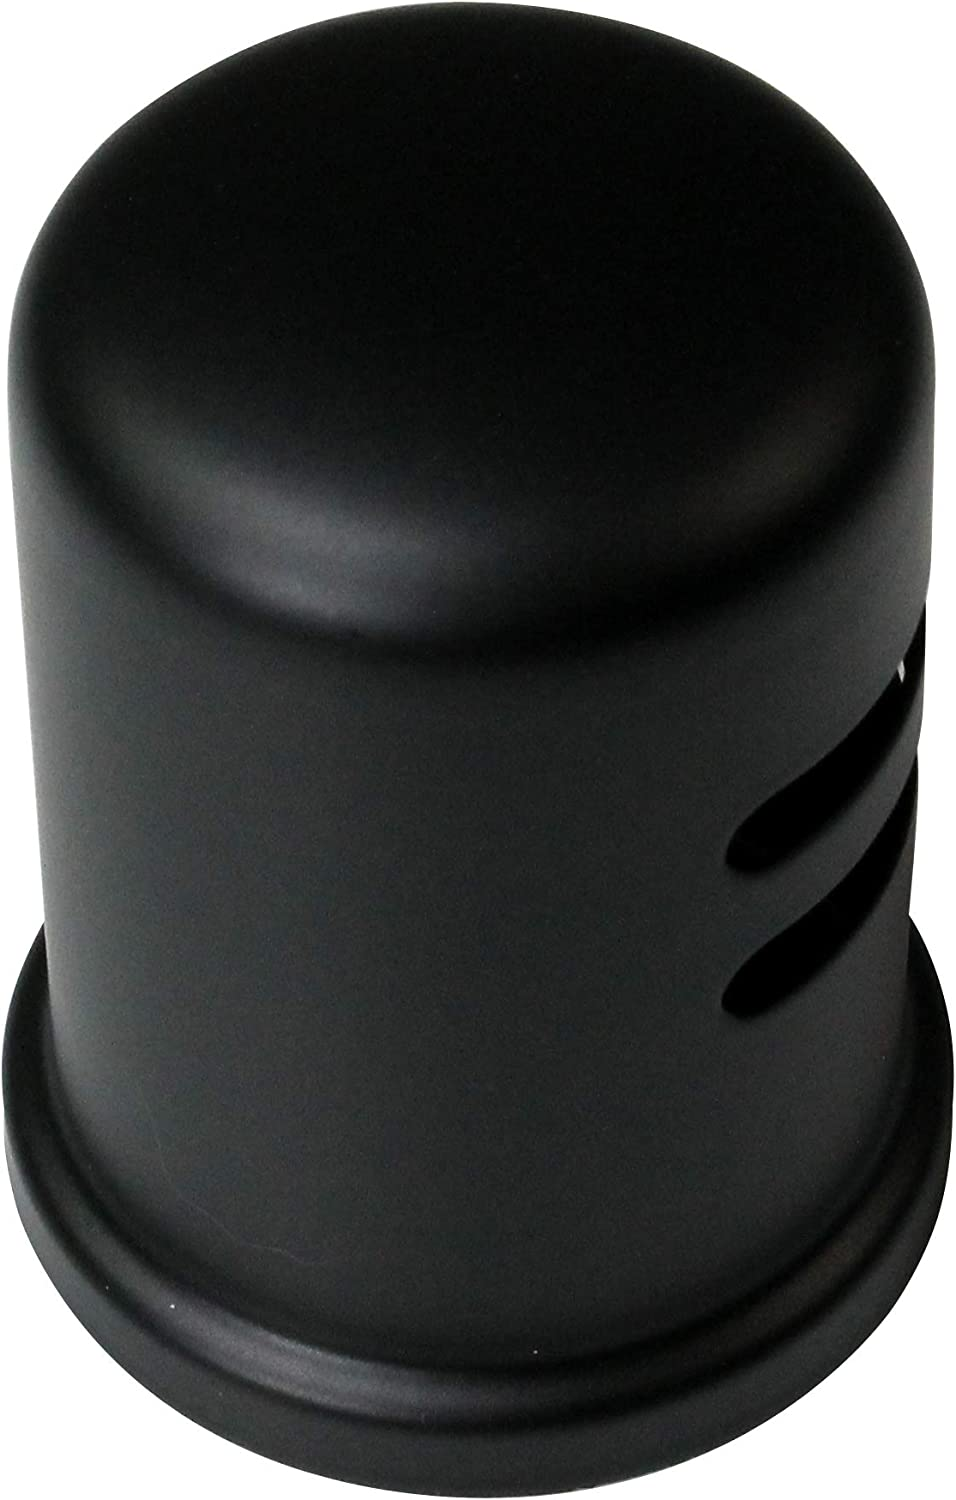 Westbrass D201-1-62 Air Gap Cap, Matte Black